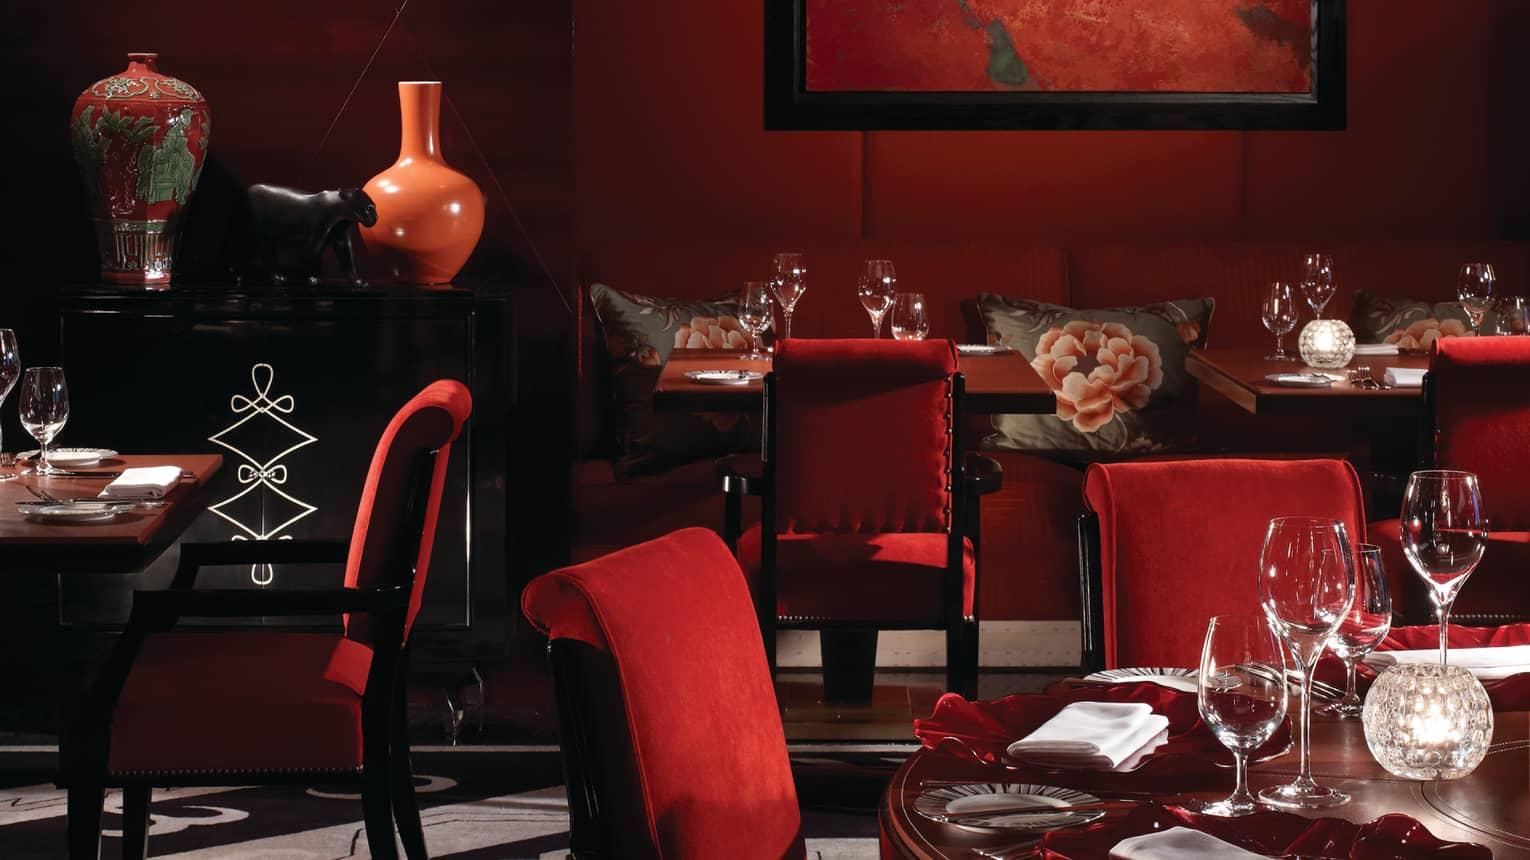 Amaranto restaurant red velvet chairs, tables, floral vases and pillows on banquettes